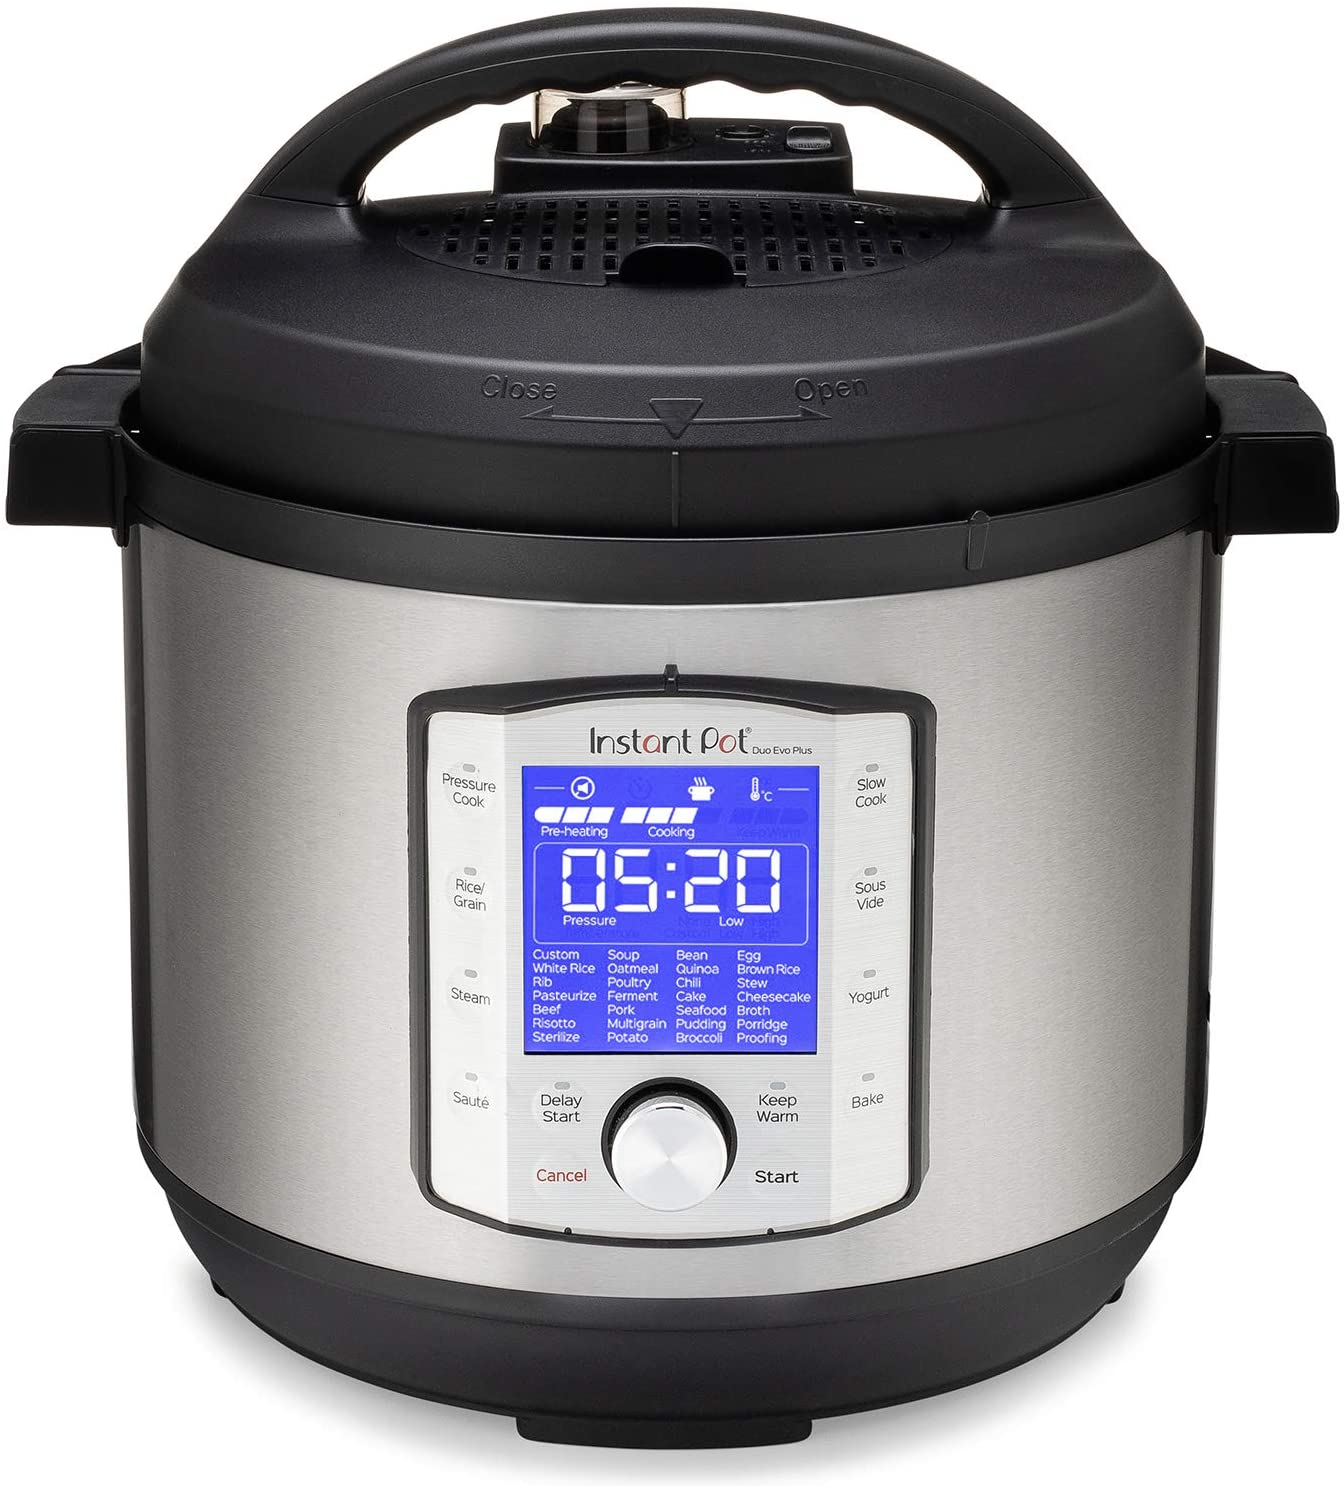 8-Qt Instant Pot Duo Evo Plus 9 in 1 Pressure Cooker $90 & More + Free Shipping